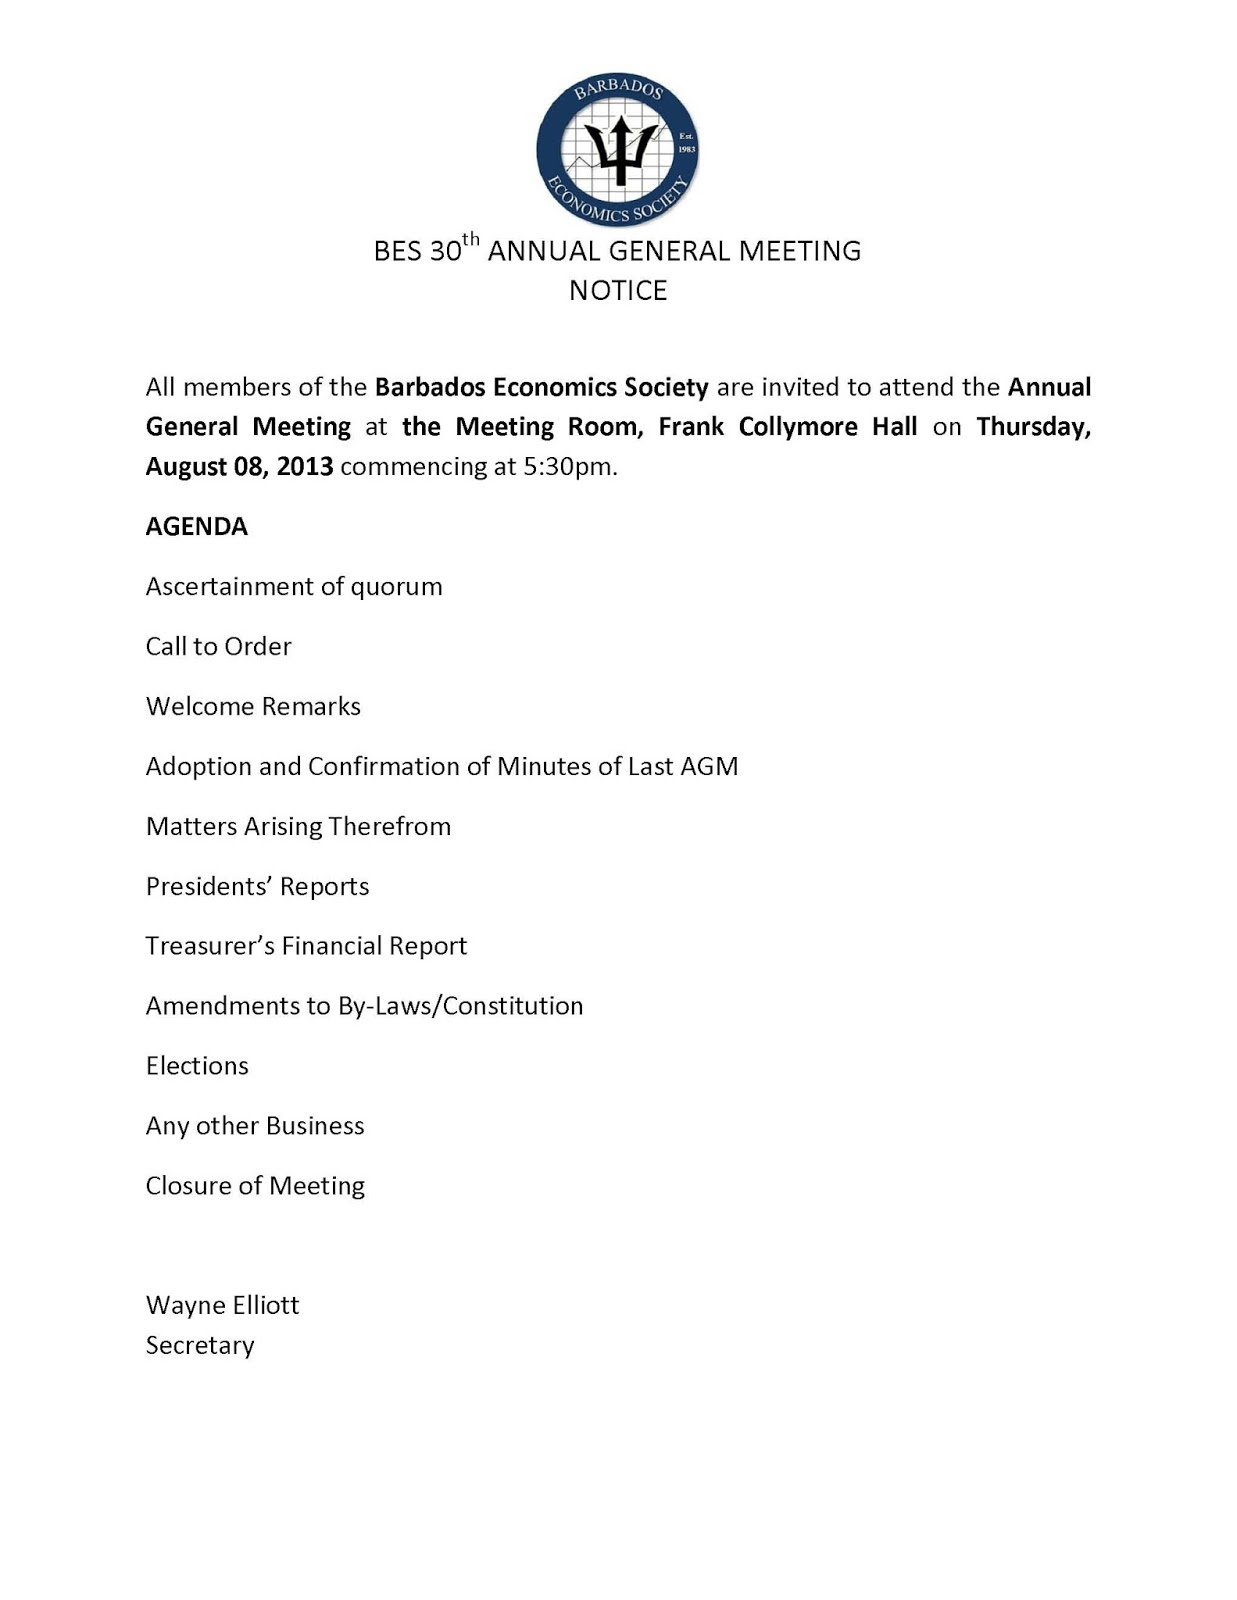 Agm notice 2013 barbados economics society agm notice 2013 thecheapjerseys Gallery